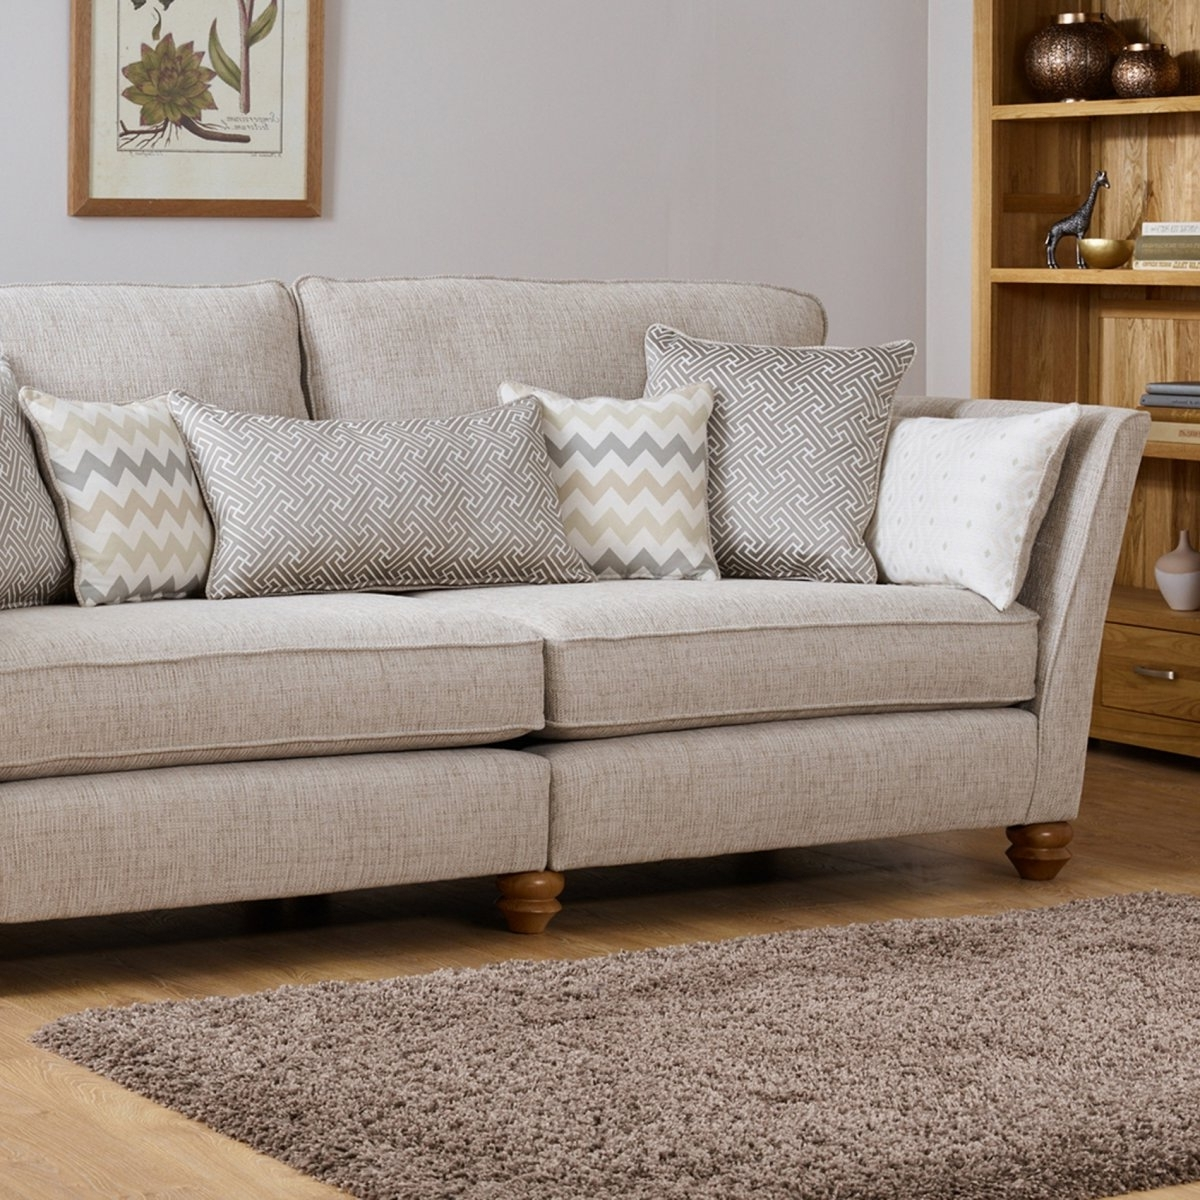 Favorite 4 Seater Sofas In Sofa : 3 Seater Sofa Littlewoods 3 Seater Yellow Sofa 3 Seater (View 12 of 20)